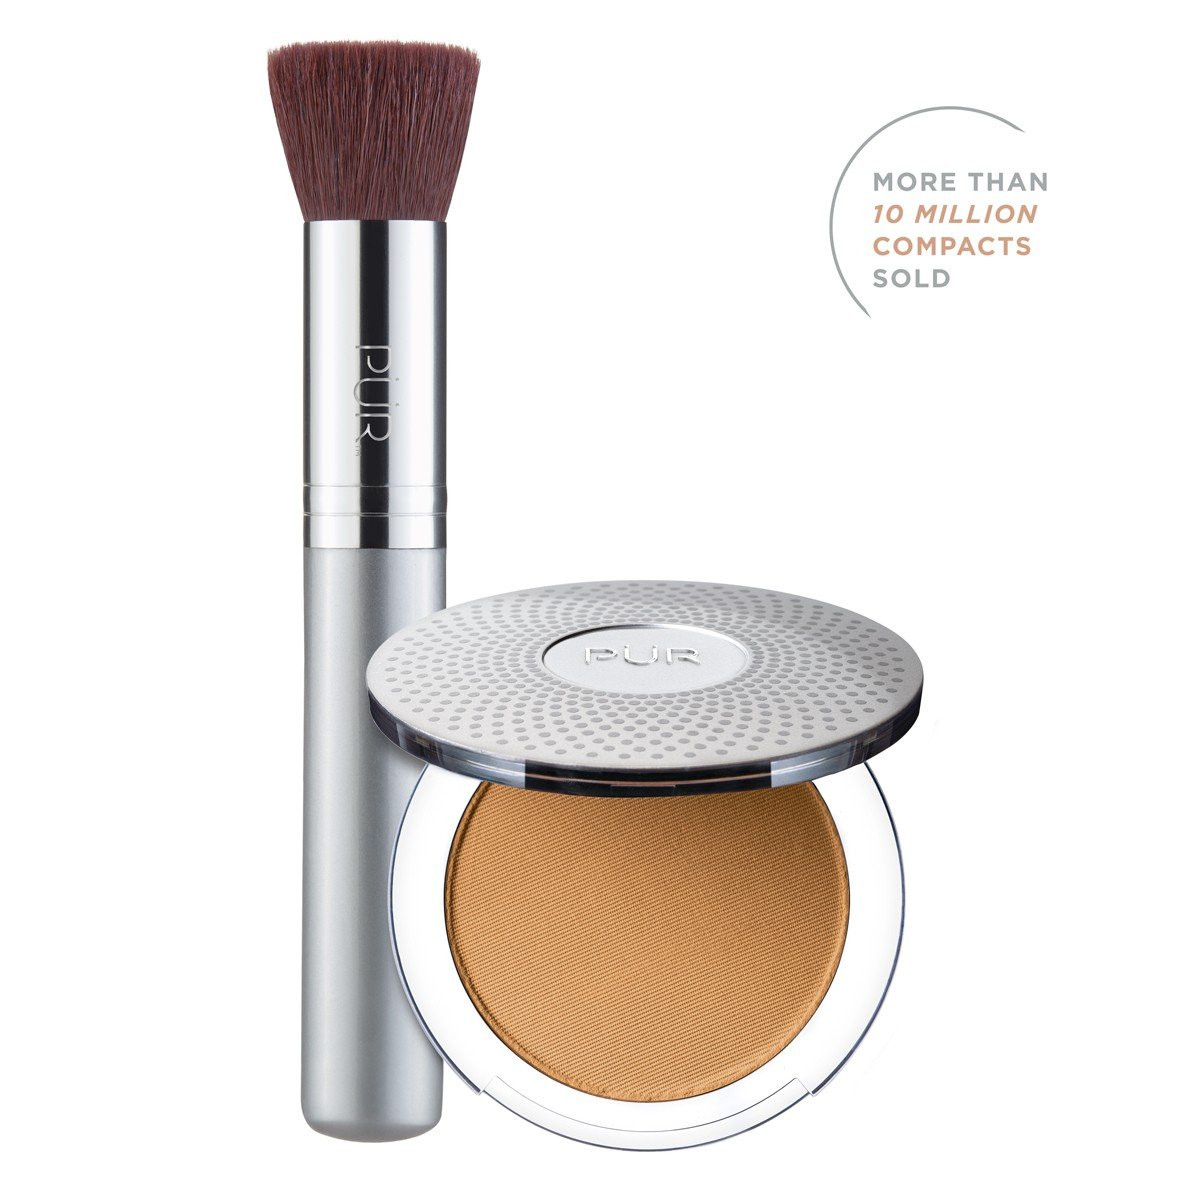 TRY PÜR! 4-in-1 Pressed Mineral Makeup and Brush Kit in Golden Dark